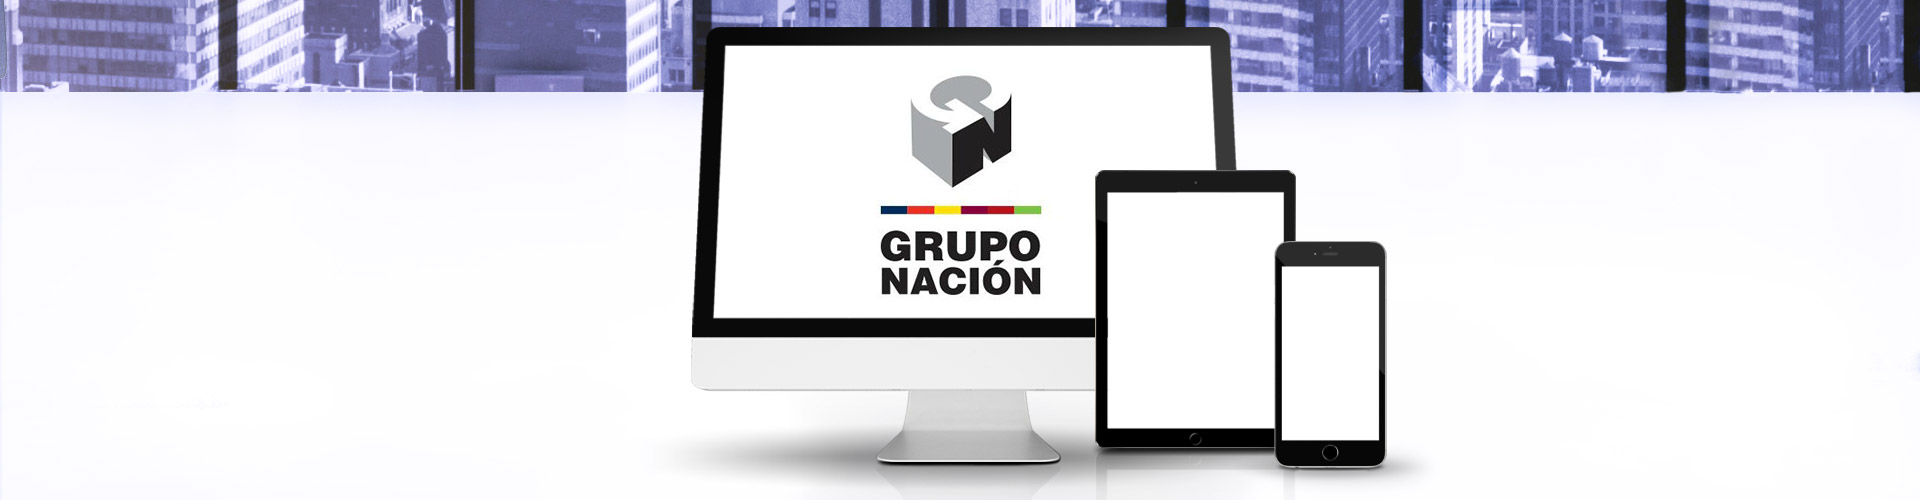 PageSuite Collaborate with Grupo Nacion